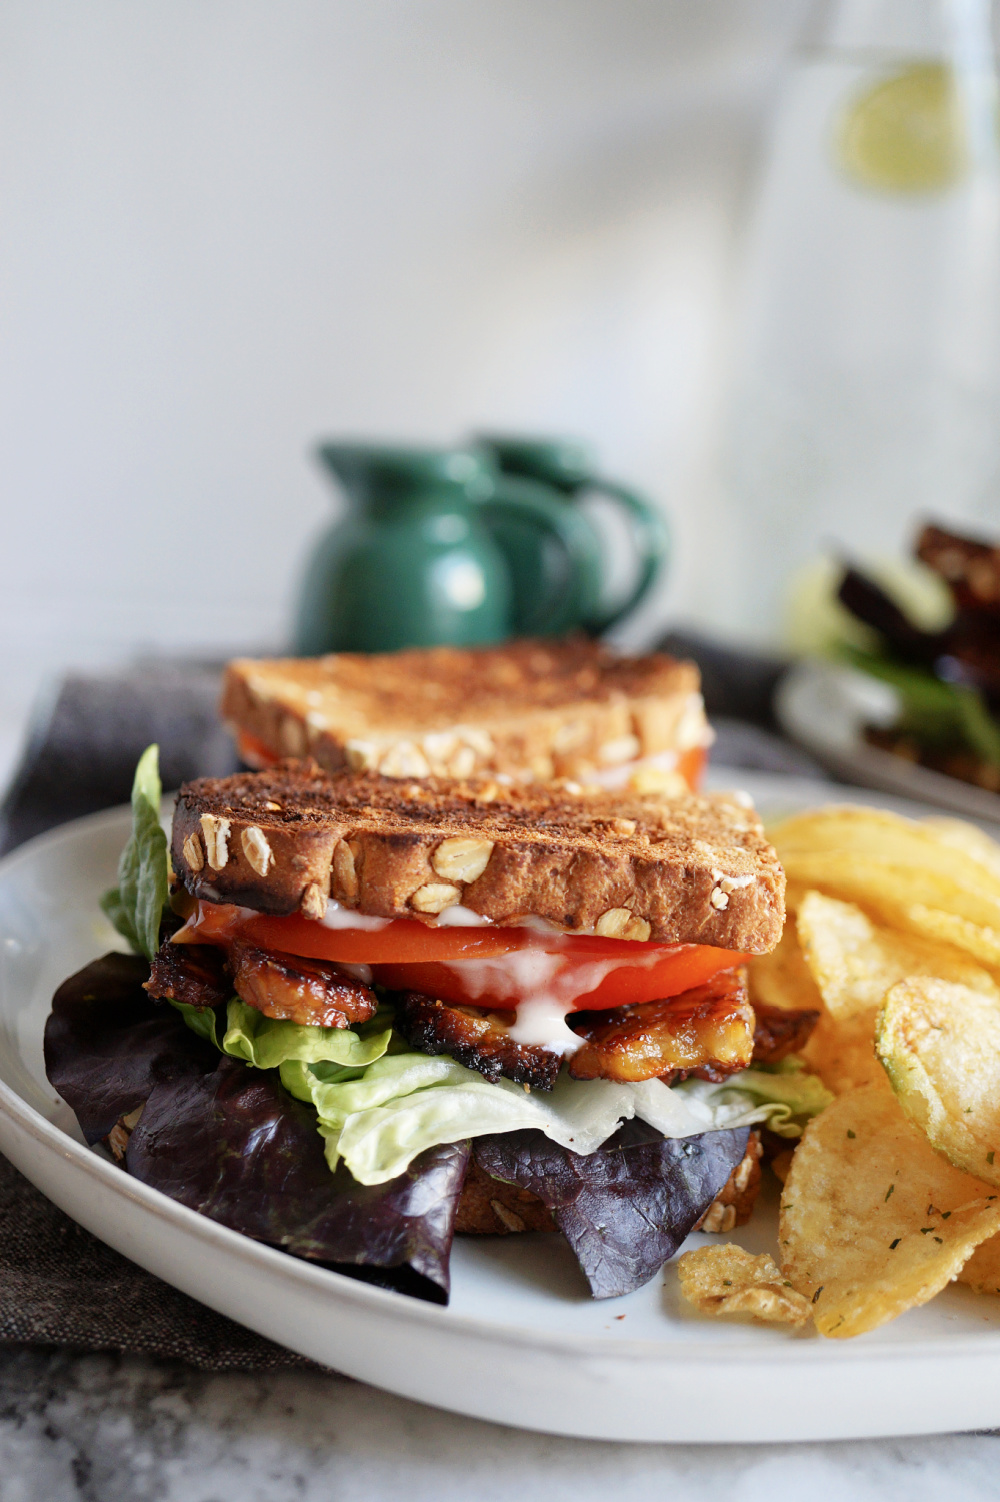 detailed close up view of BLT sandwich